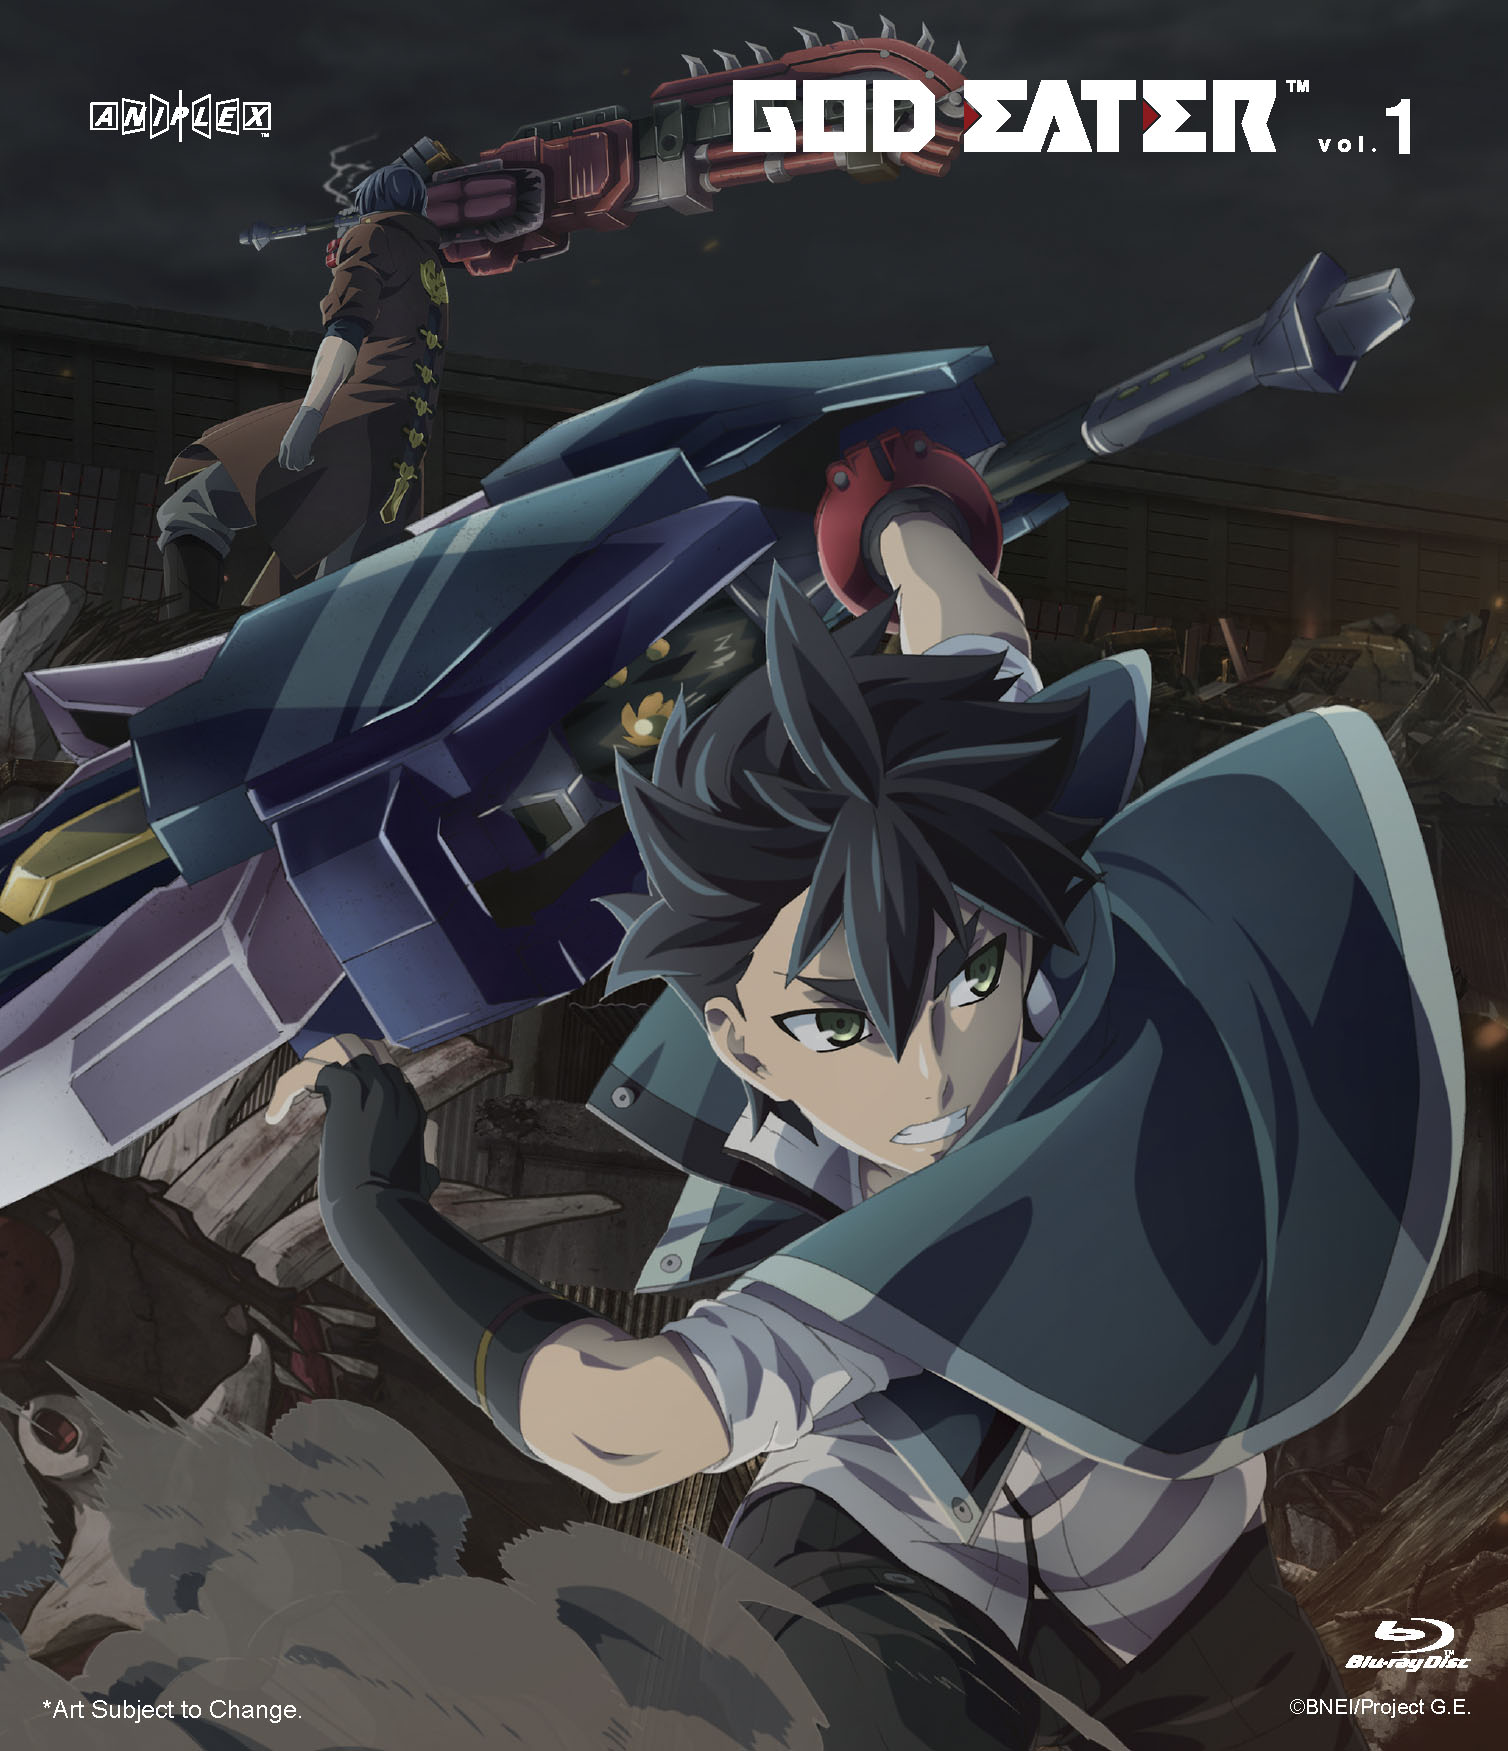 God Eater Volume 1 Blu-ray 851822006912